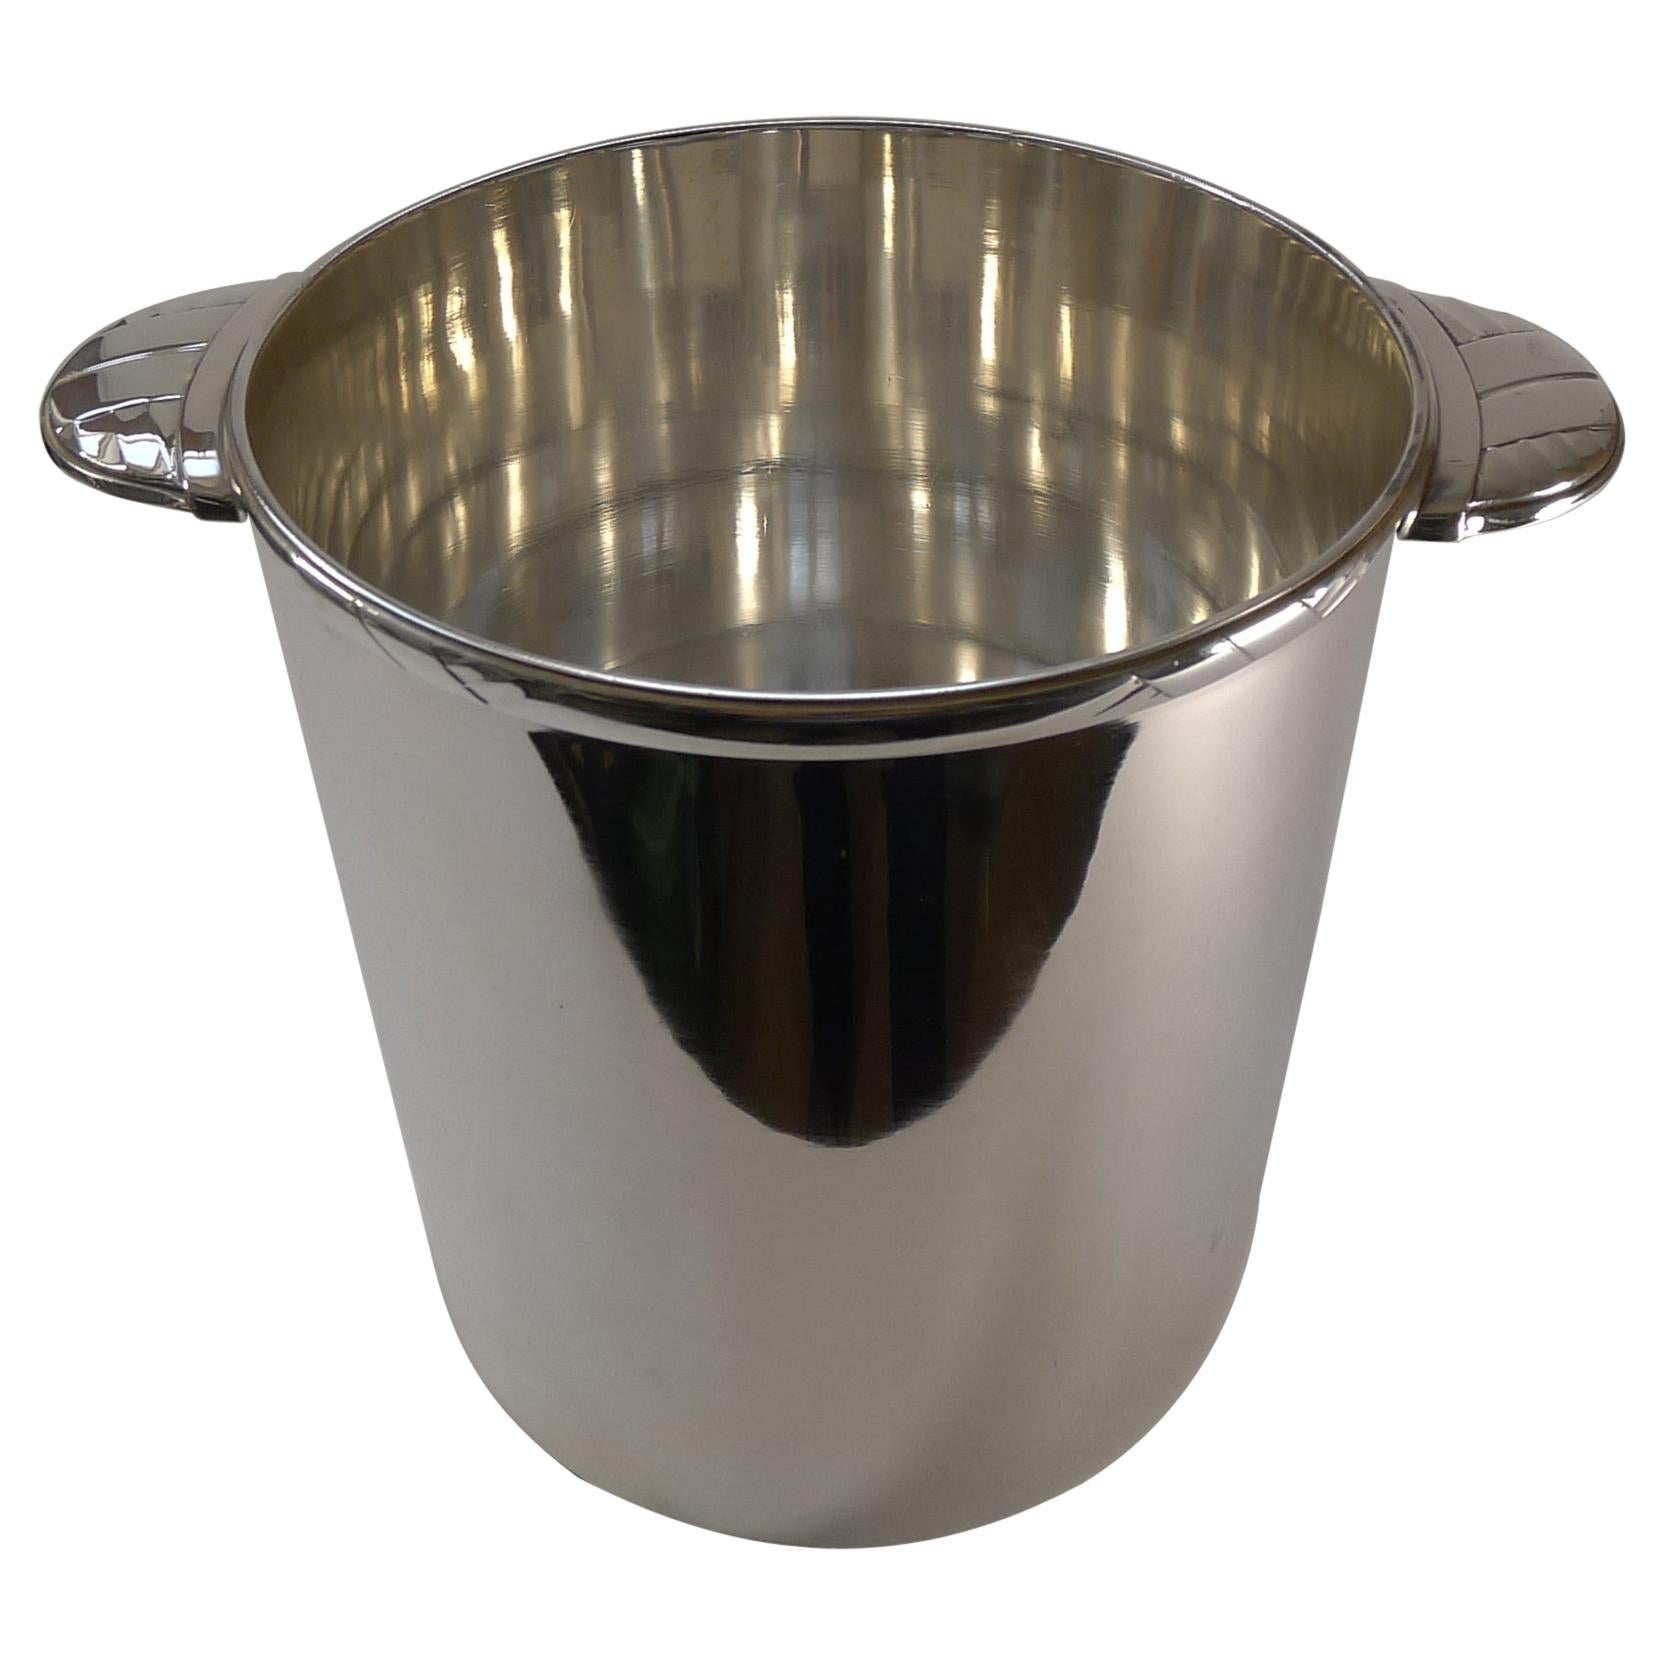 Rare French Art Deco Champagne Bucket / Wine Cooler by Ercuis, Paris